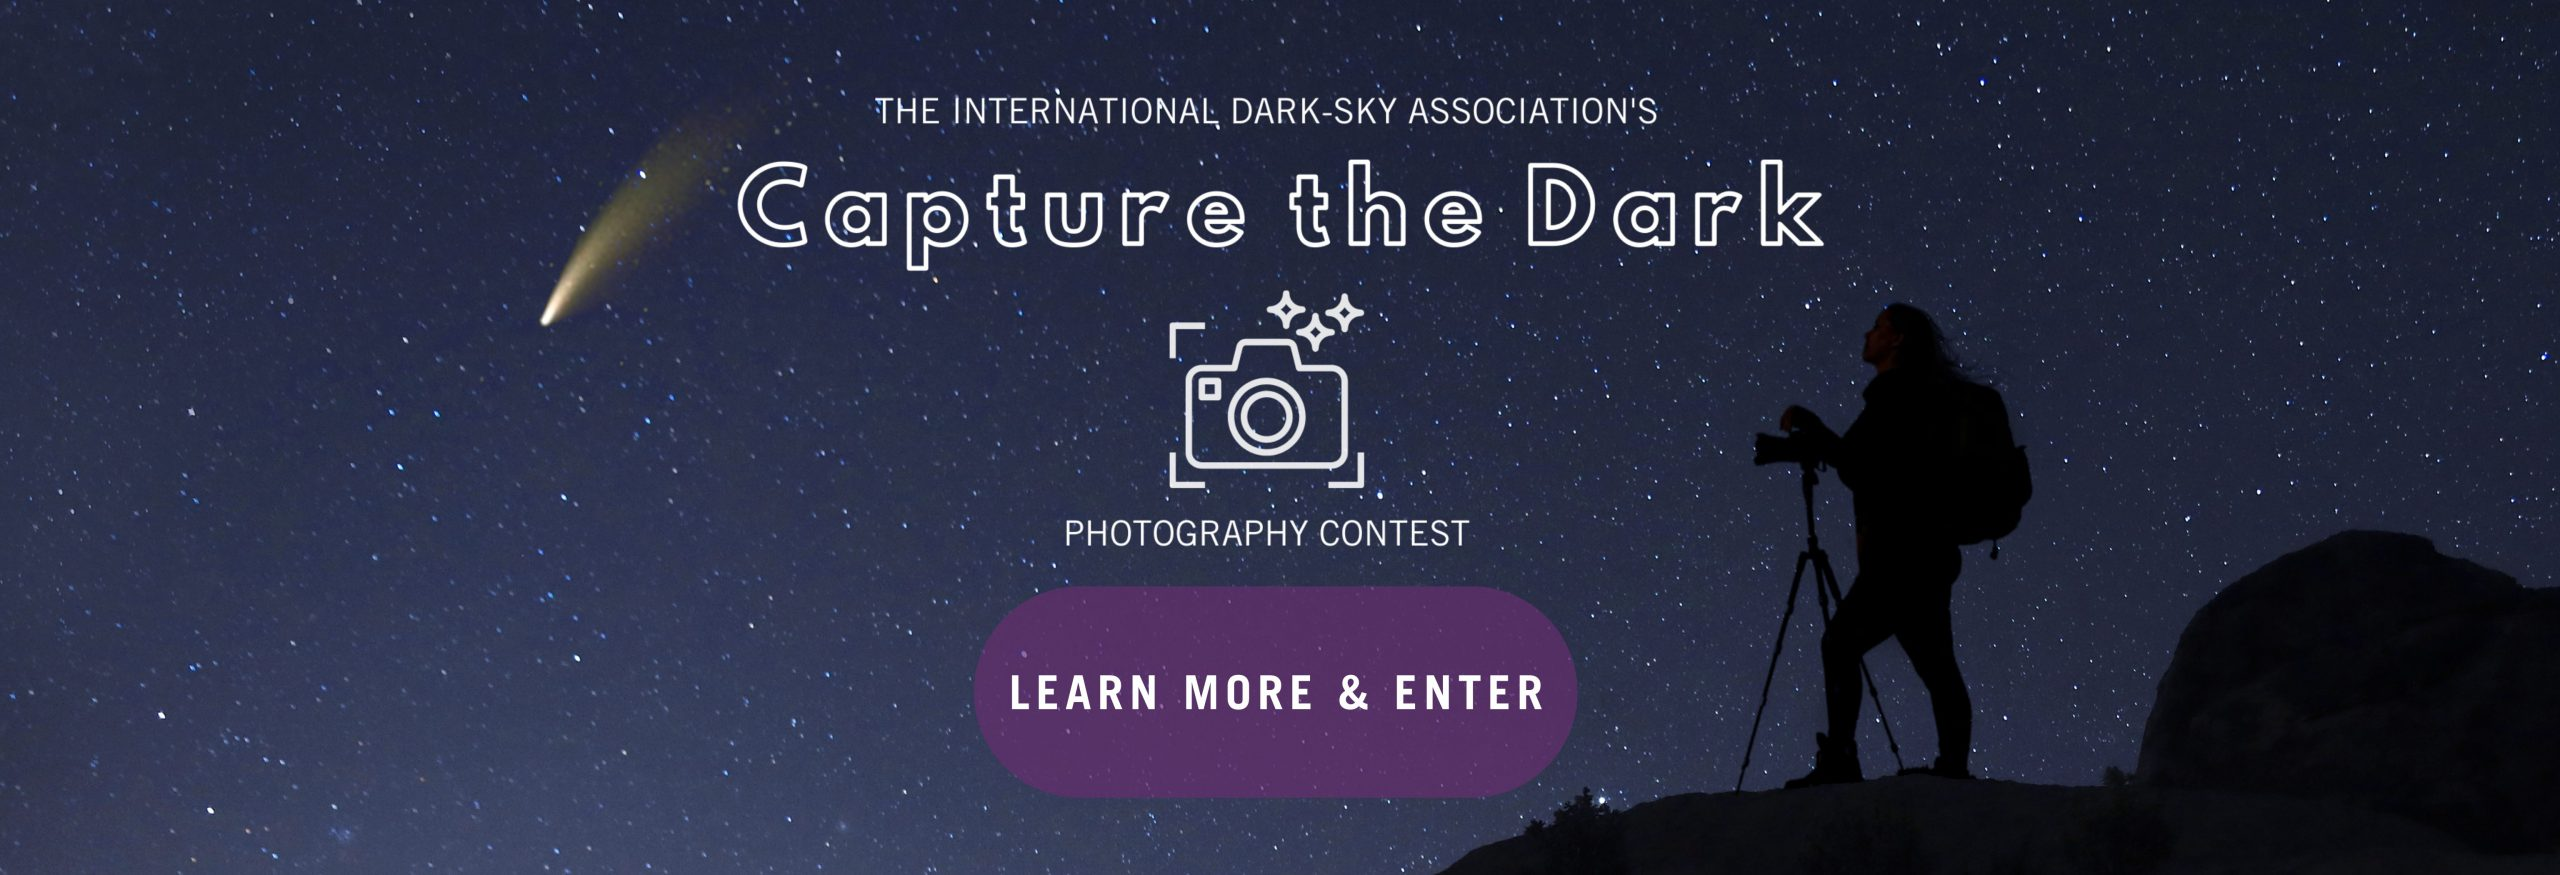 """Text reads: The International Dark-Sky Association's Capture the Dark Photography Contest with a purple button that reads """"learn more and enter"""" over an image of the night sky. A comet on the left trails through the sky and a person on the right hand side with the camera."""